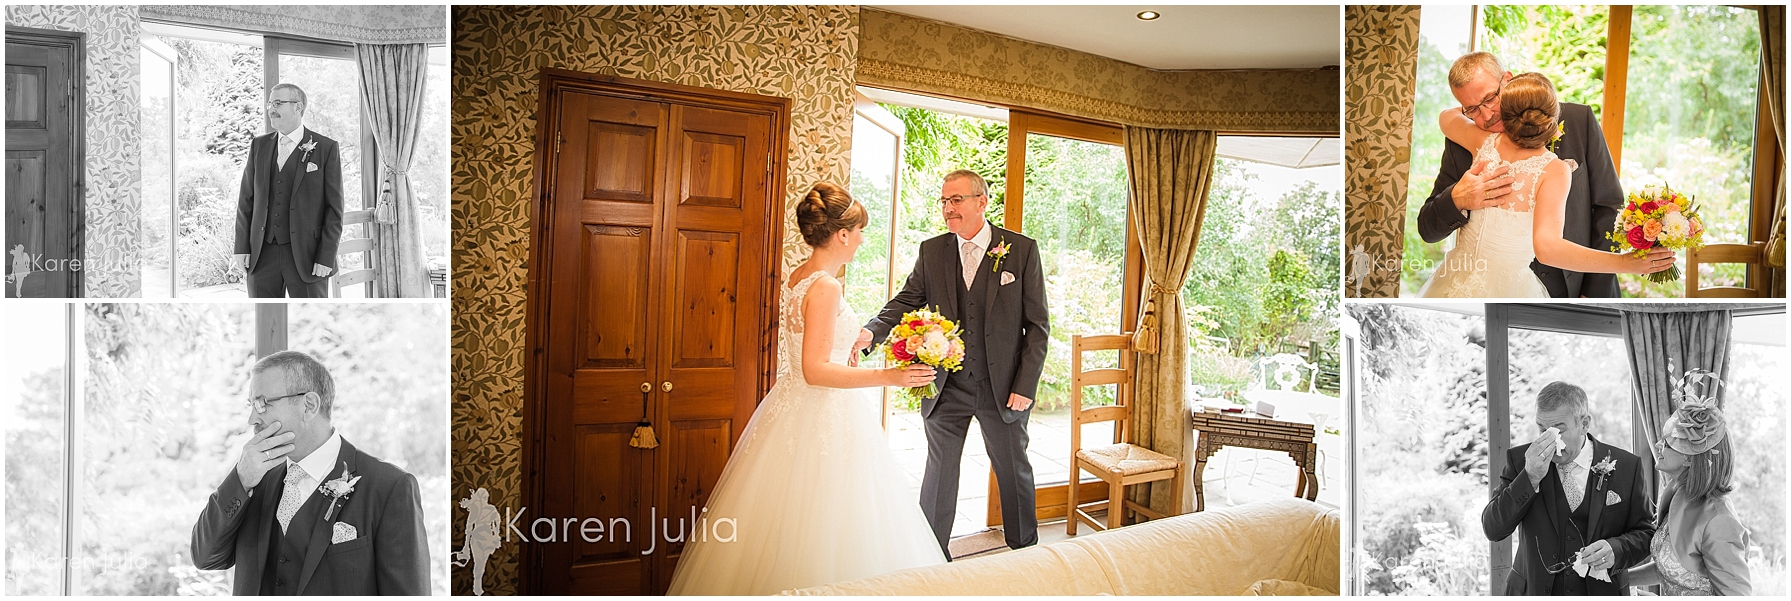 Miller-Howe-Hotel-Summer-Wedding-Photography-05